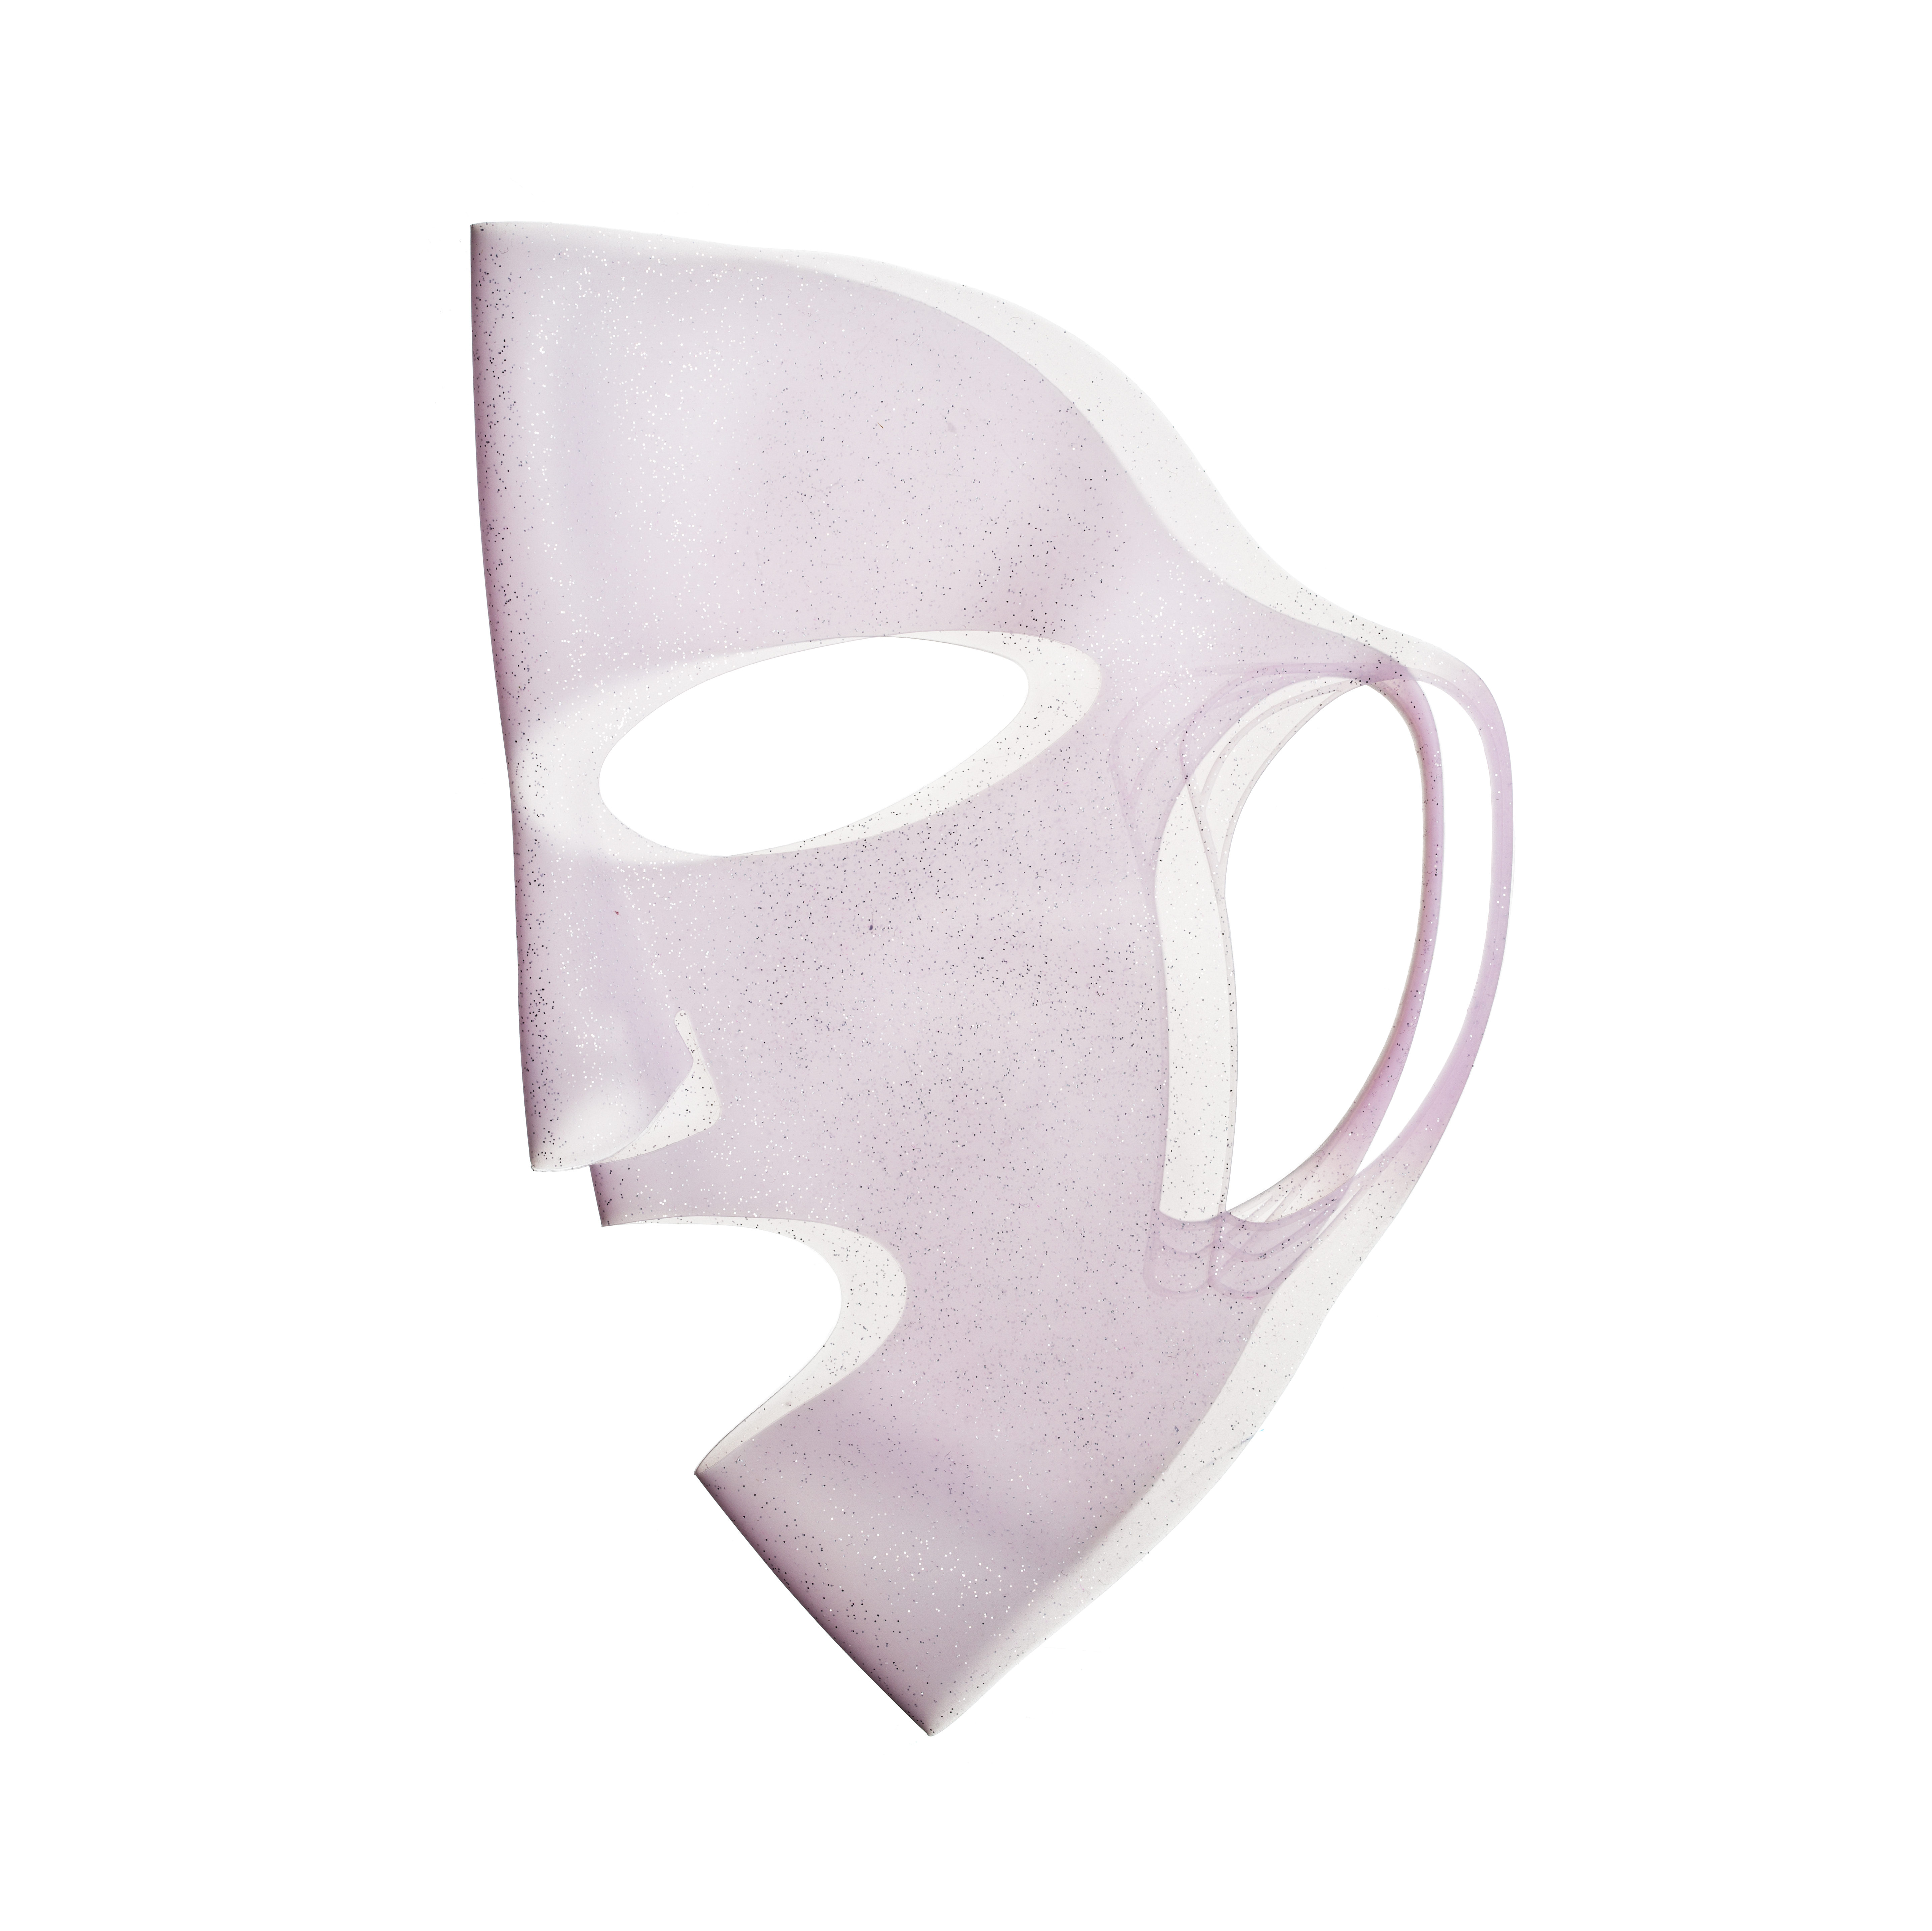 Silicone Sheet Mask Cover Pink Glitter